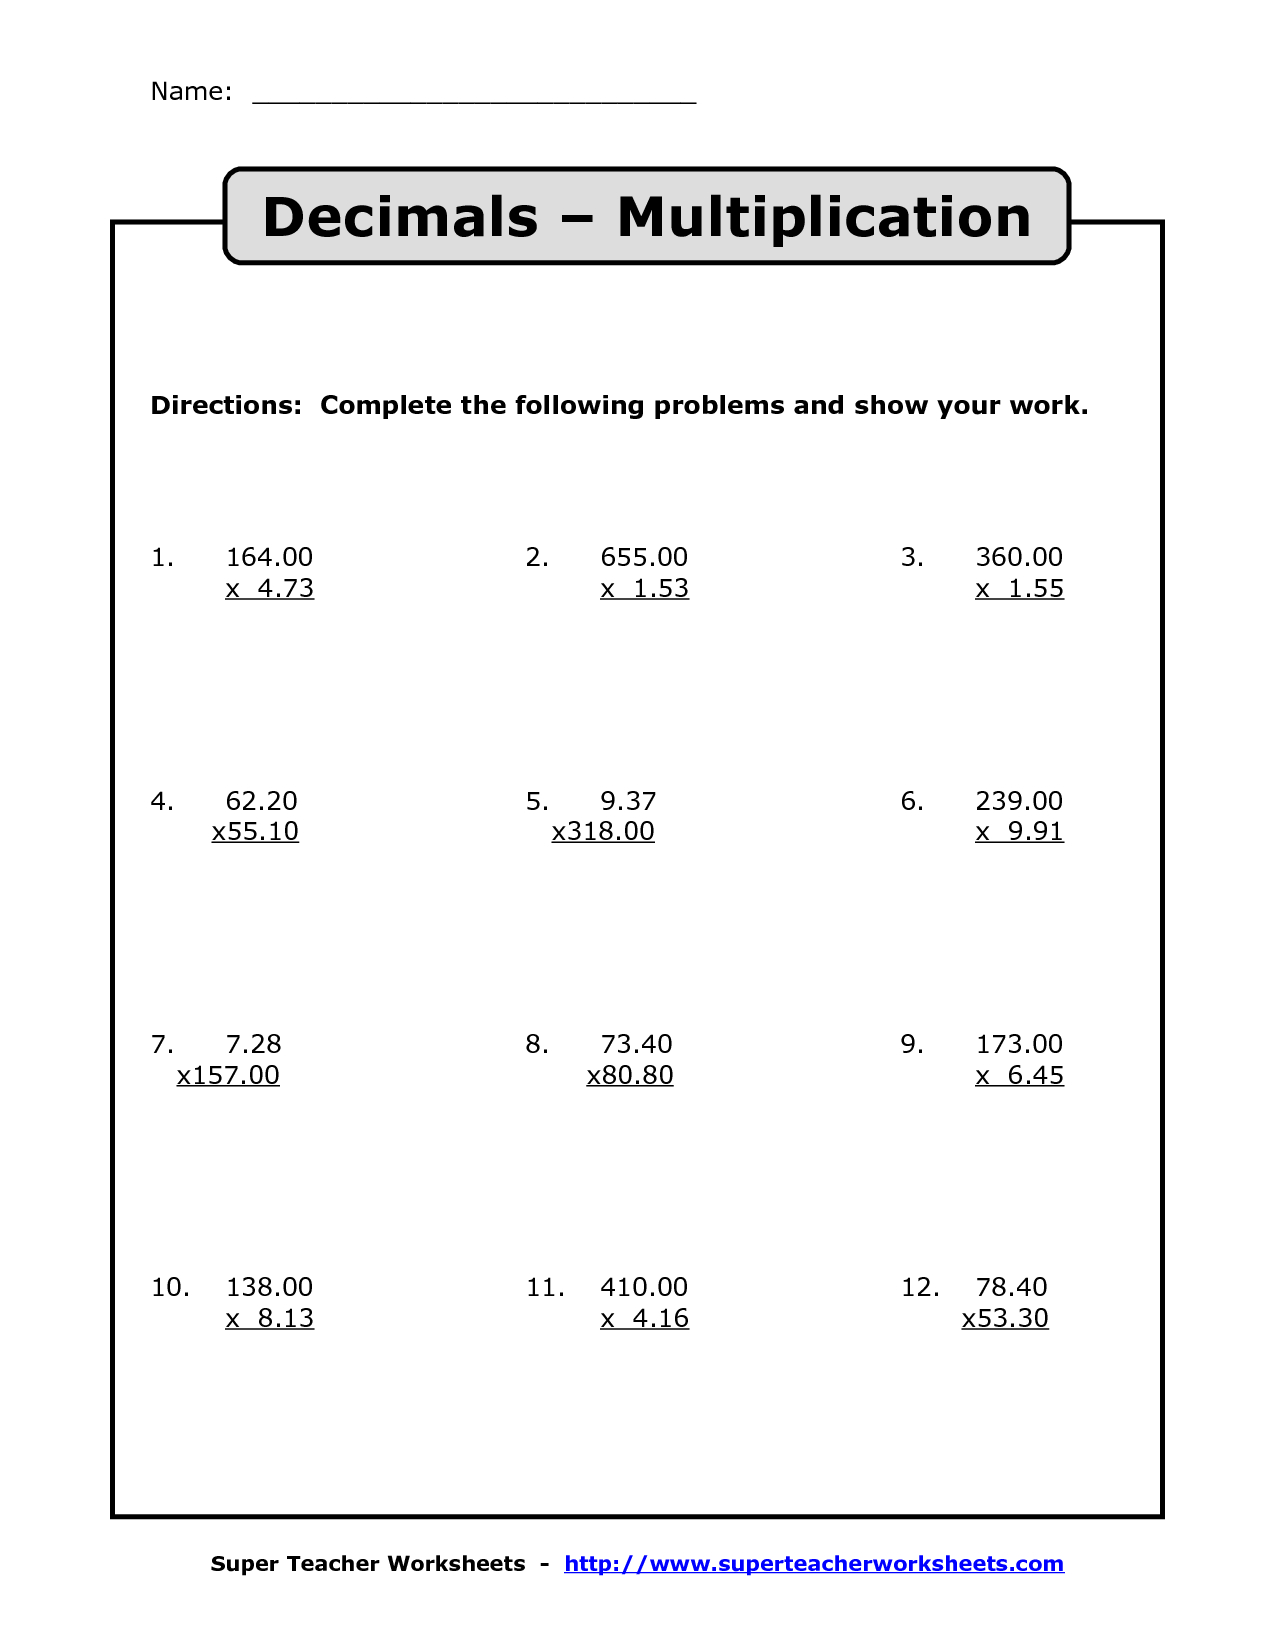 Multiplying Decimals | Multiplication With Decimals Worksheets | Free Printable Decimal Multiplication Worksheets